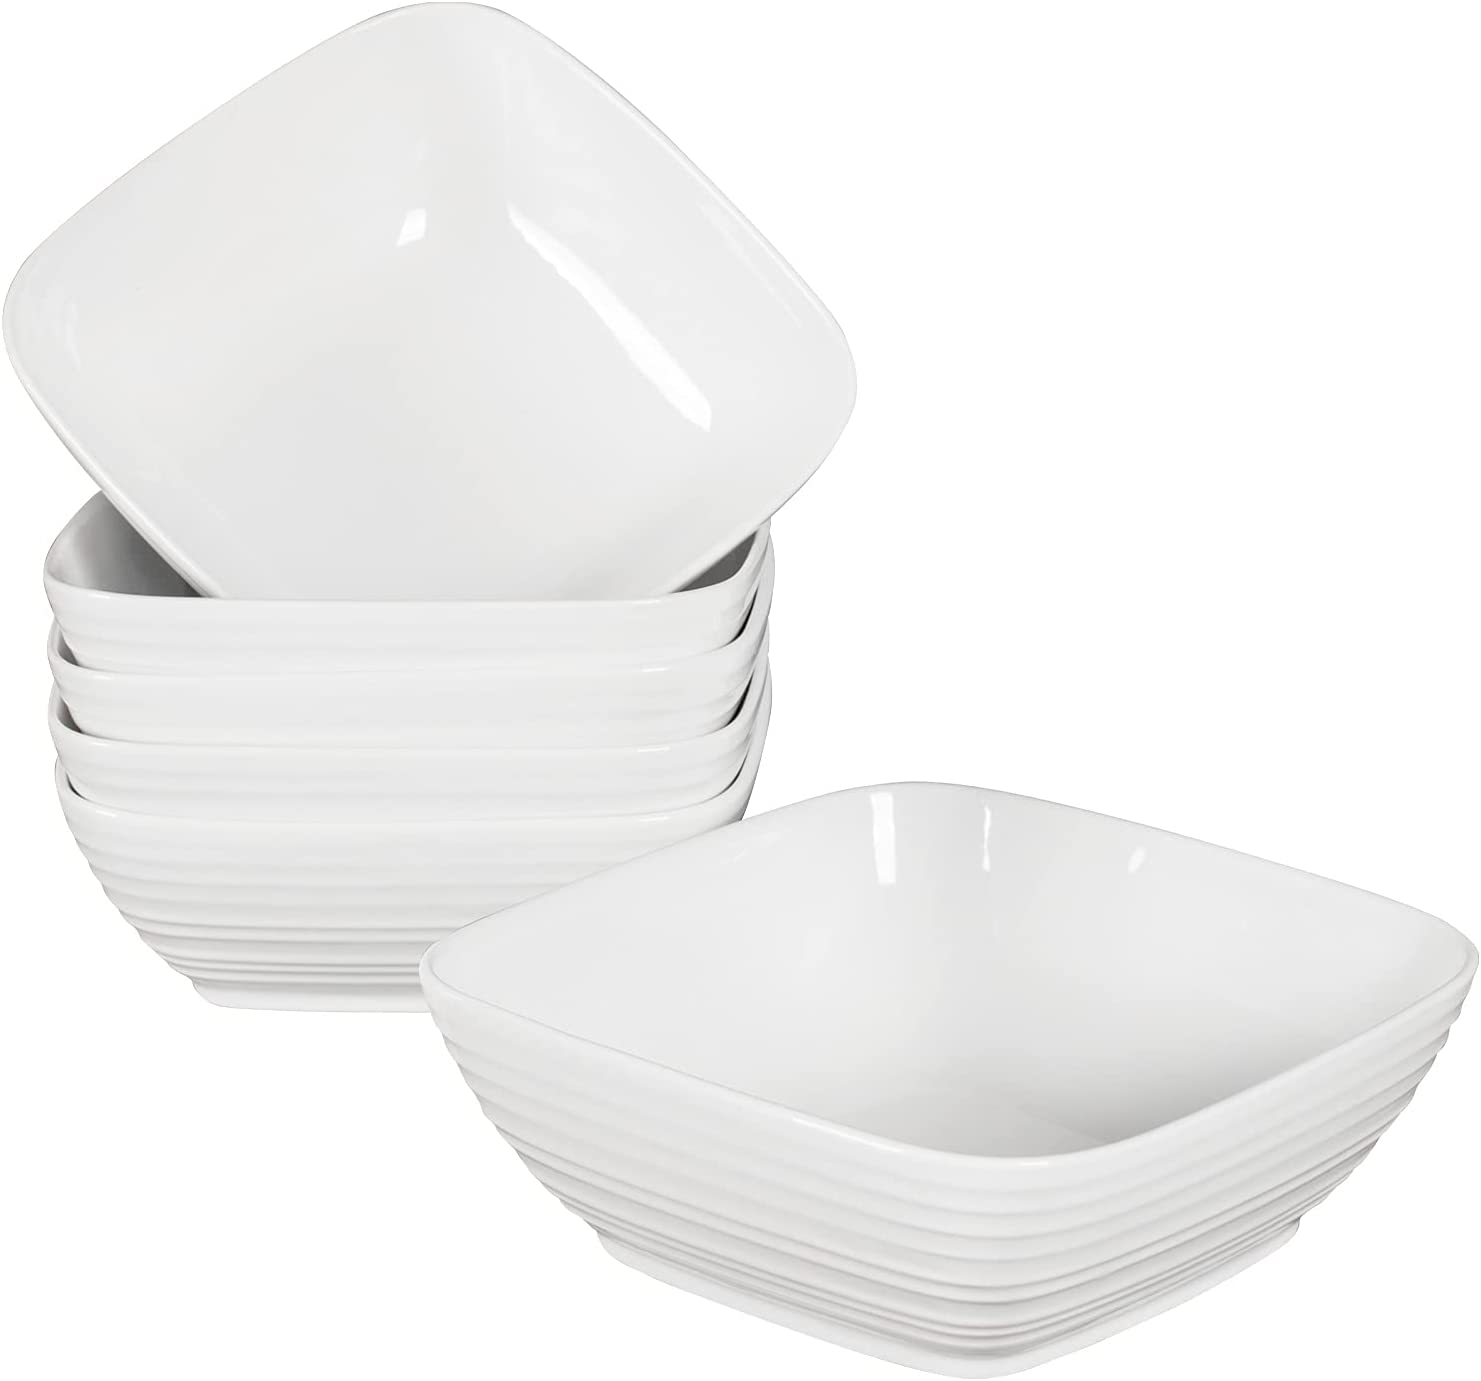 Hasense Porcelain Square Bowls, 24 Ounce White Cereal Bowls Set of 6 for Cereal Salad and Dessert, Microwave Dishwasher and Oven Safe